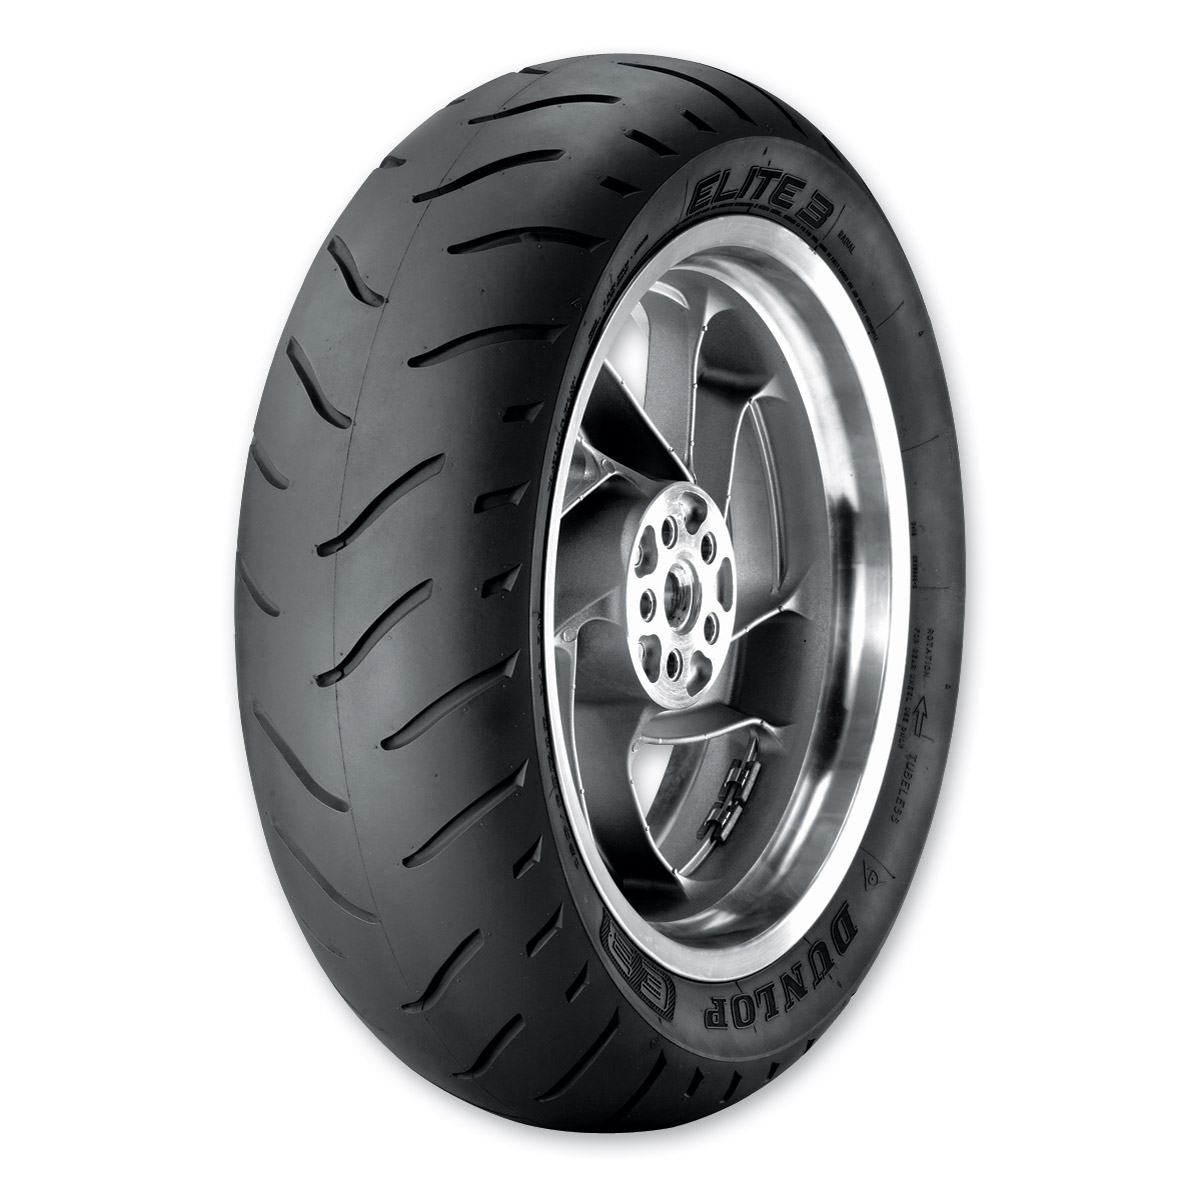 Dunlop Elite 3 180/60R16 Rear Tire